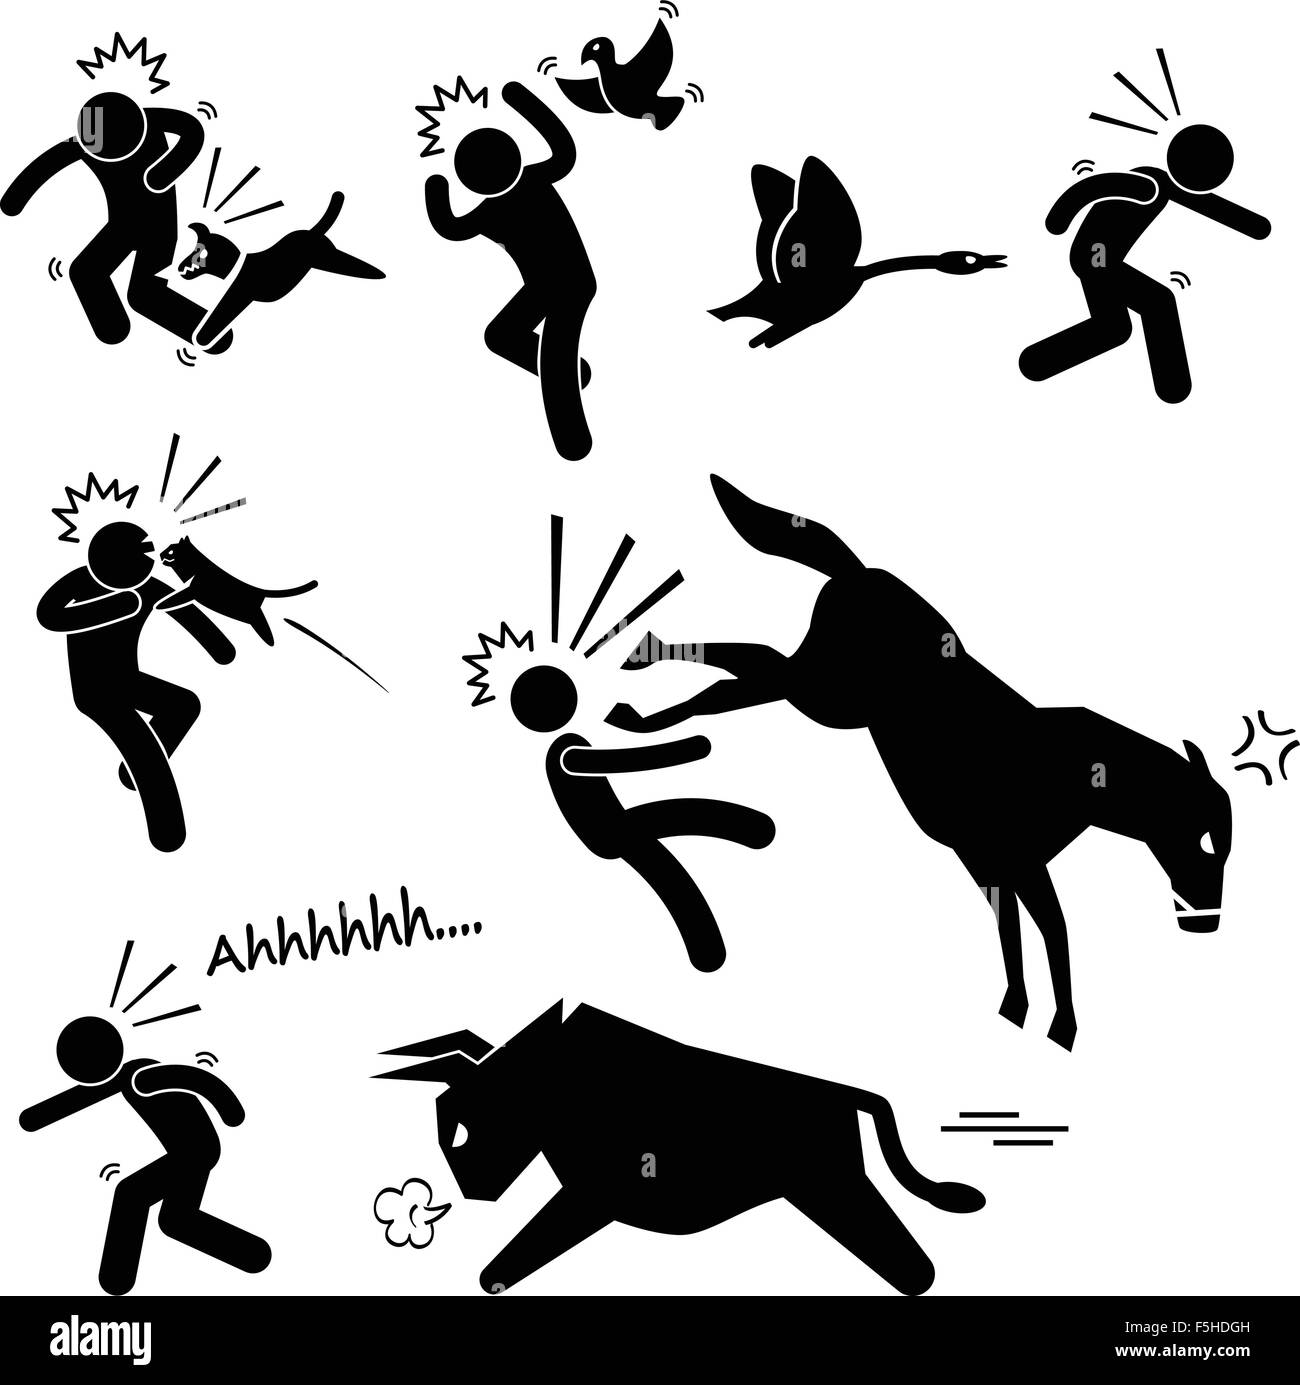 Domestic Animal Attacking Hurting Human Stick Figure Pictogram Icon - Stock Vector